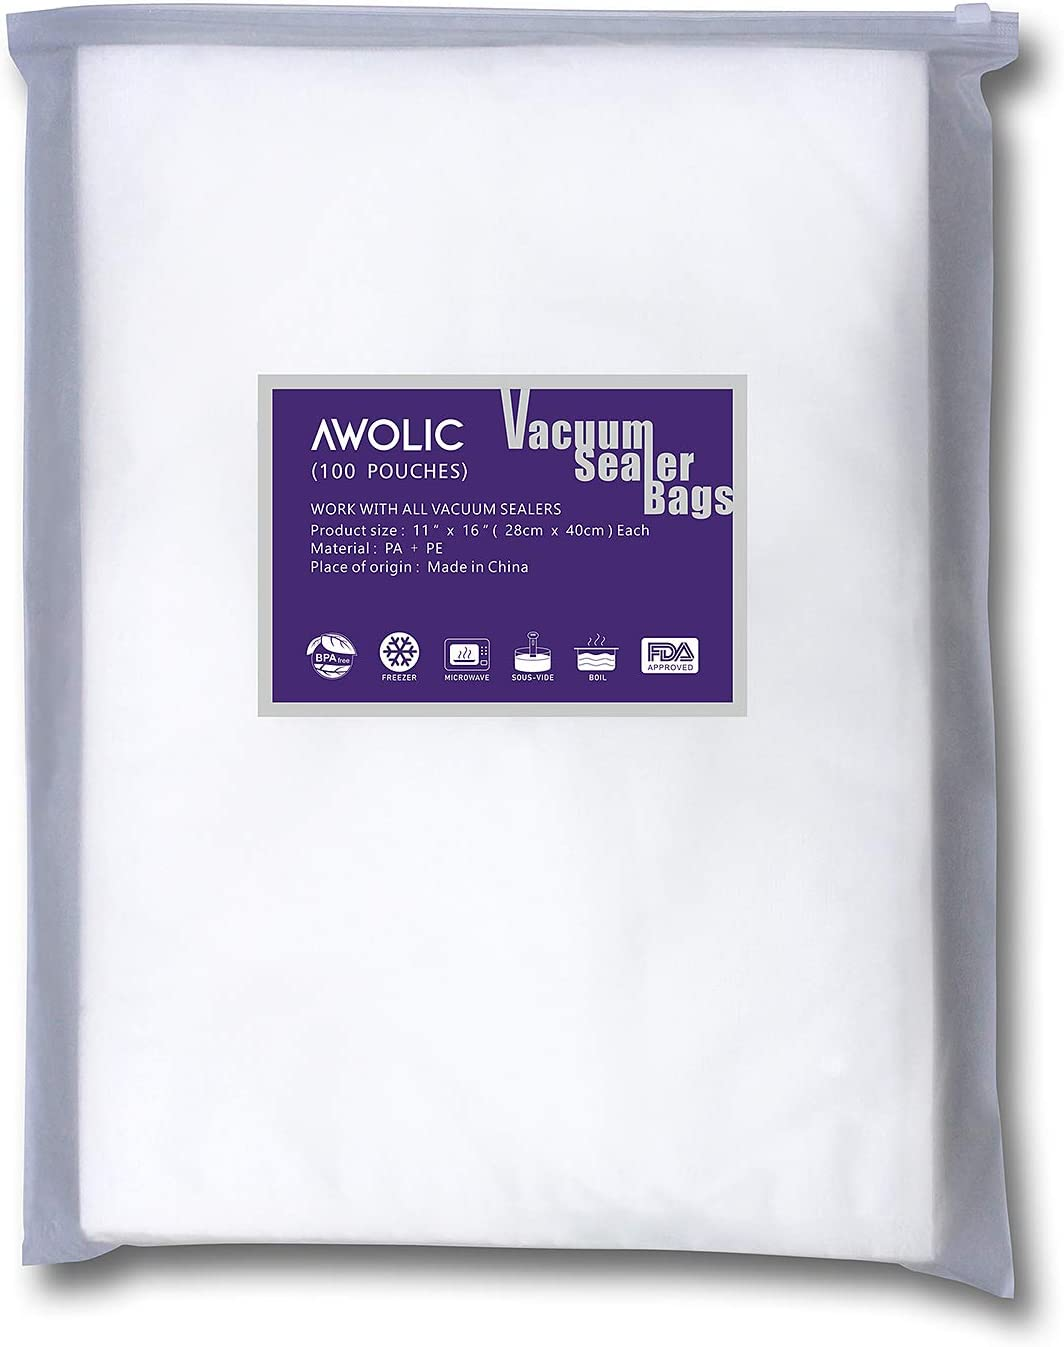 """AWOLIC Vacuum Sealer Bags,100 Gallon Size 11""""x16"""" BPA Free,Commercial Grade, Heavy Duty, Sous Vide,food saver bags work on any clamp external vacuum system."""